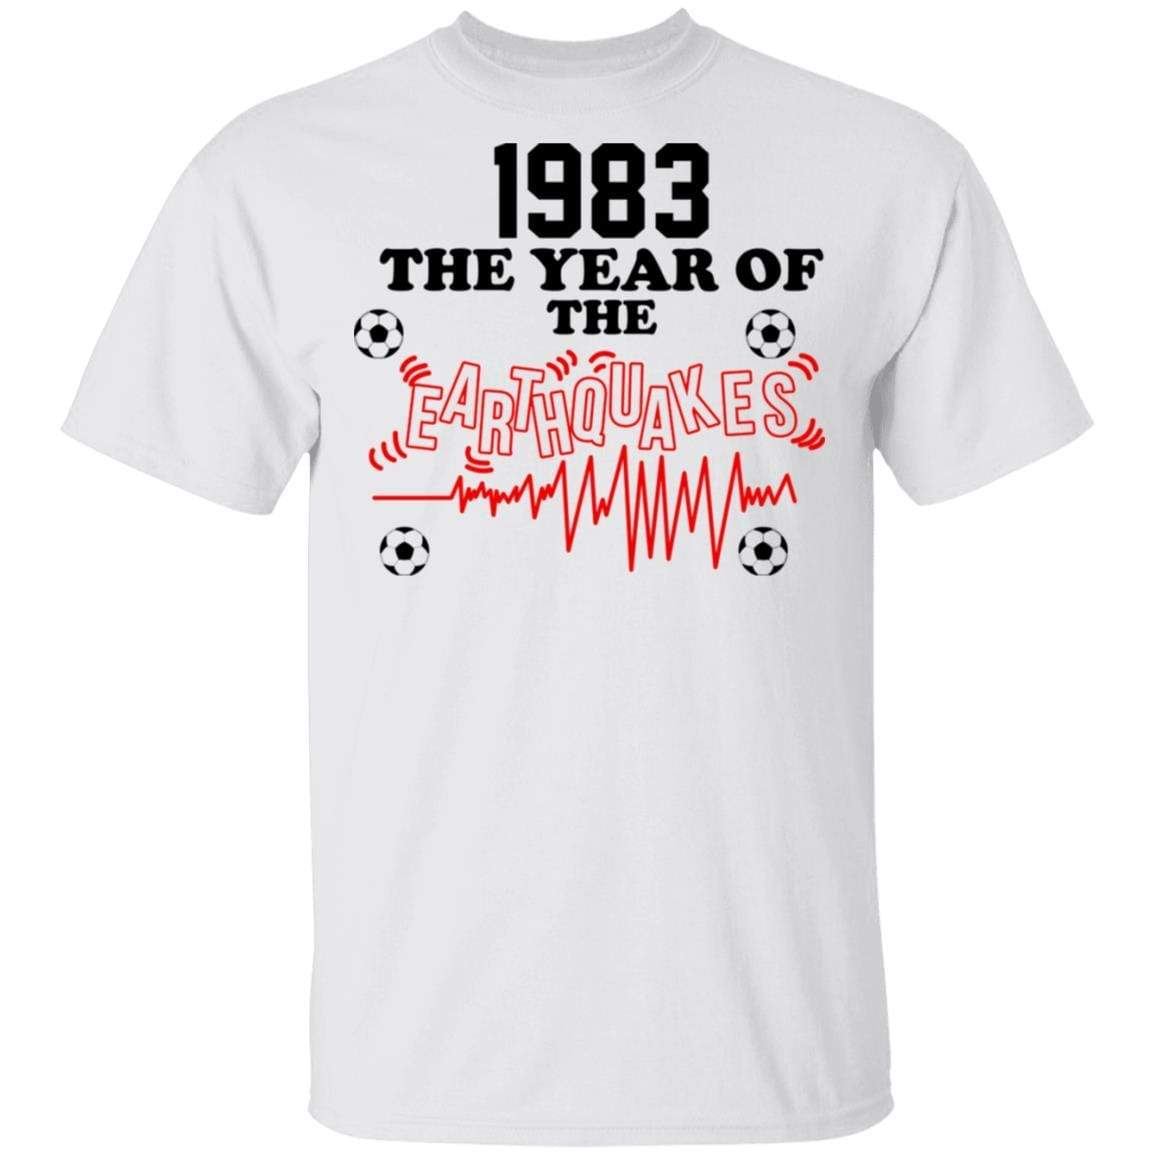 1983 The Year Of The Earthquakes San Jose Earthquakes T-Shirts, Hoodies 1049-9974-86355409-48300 - Tee Ript